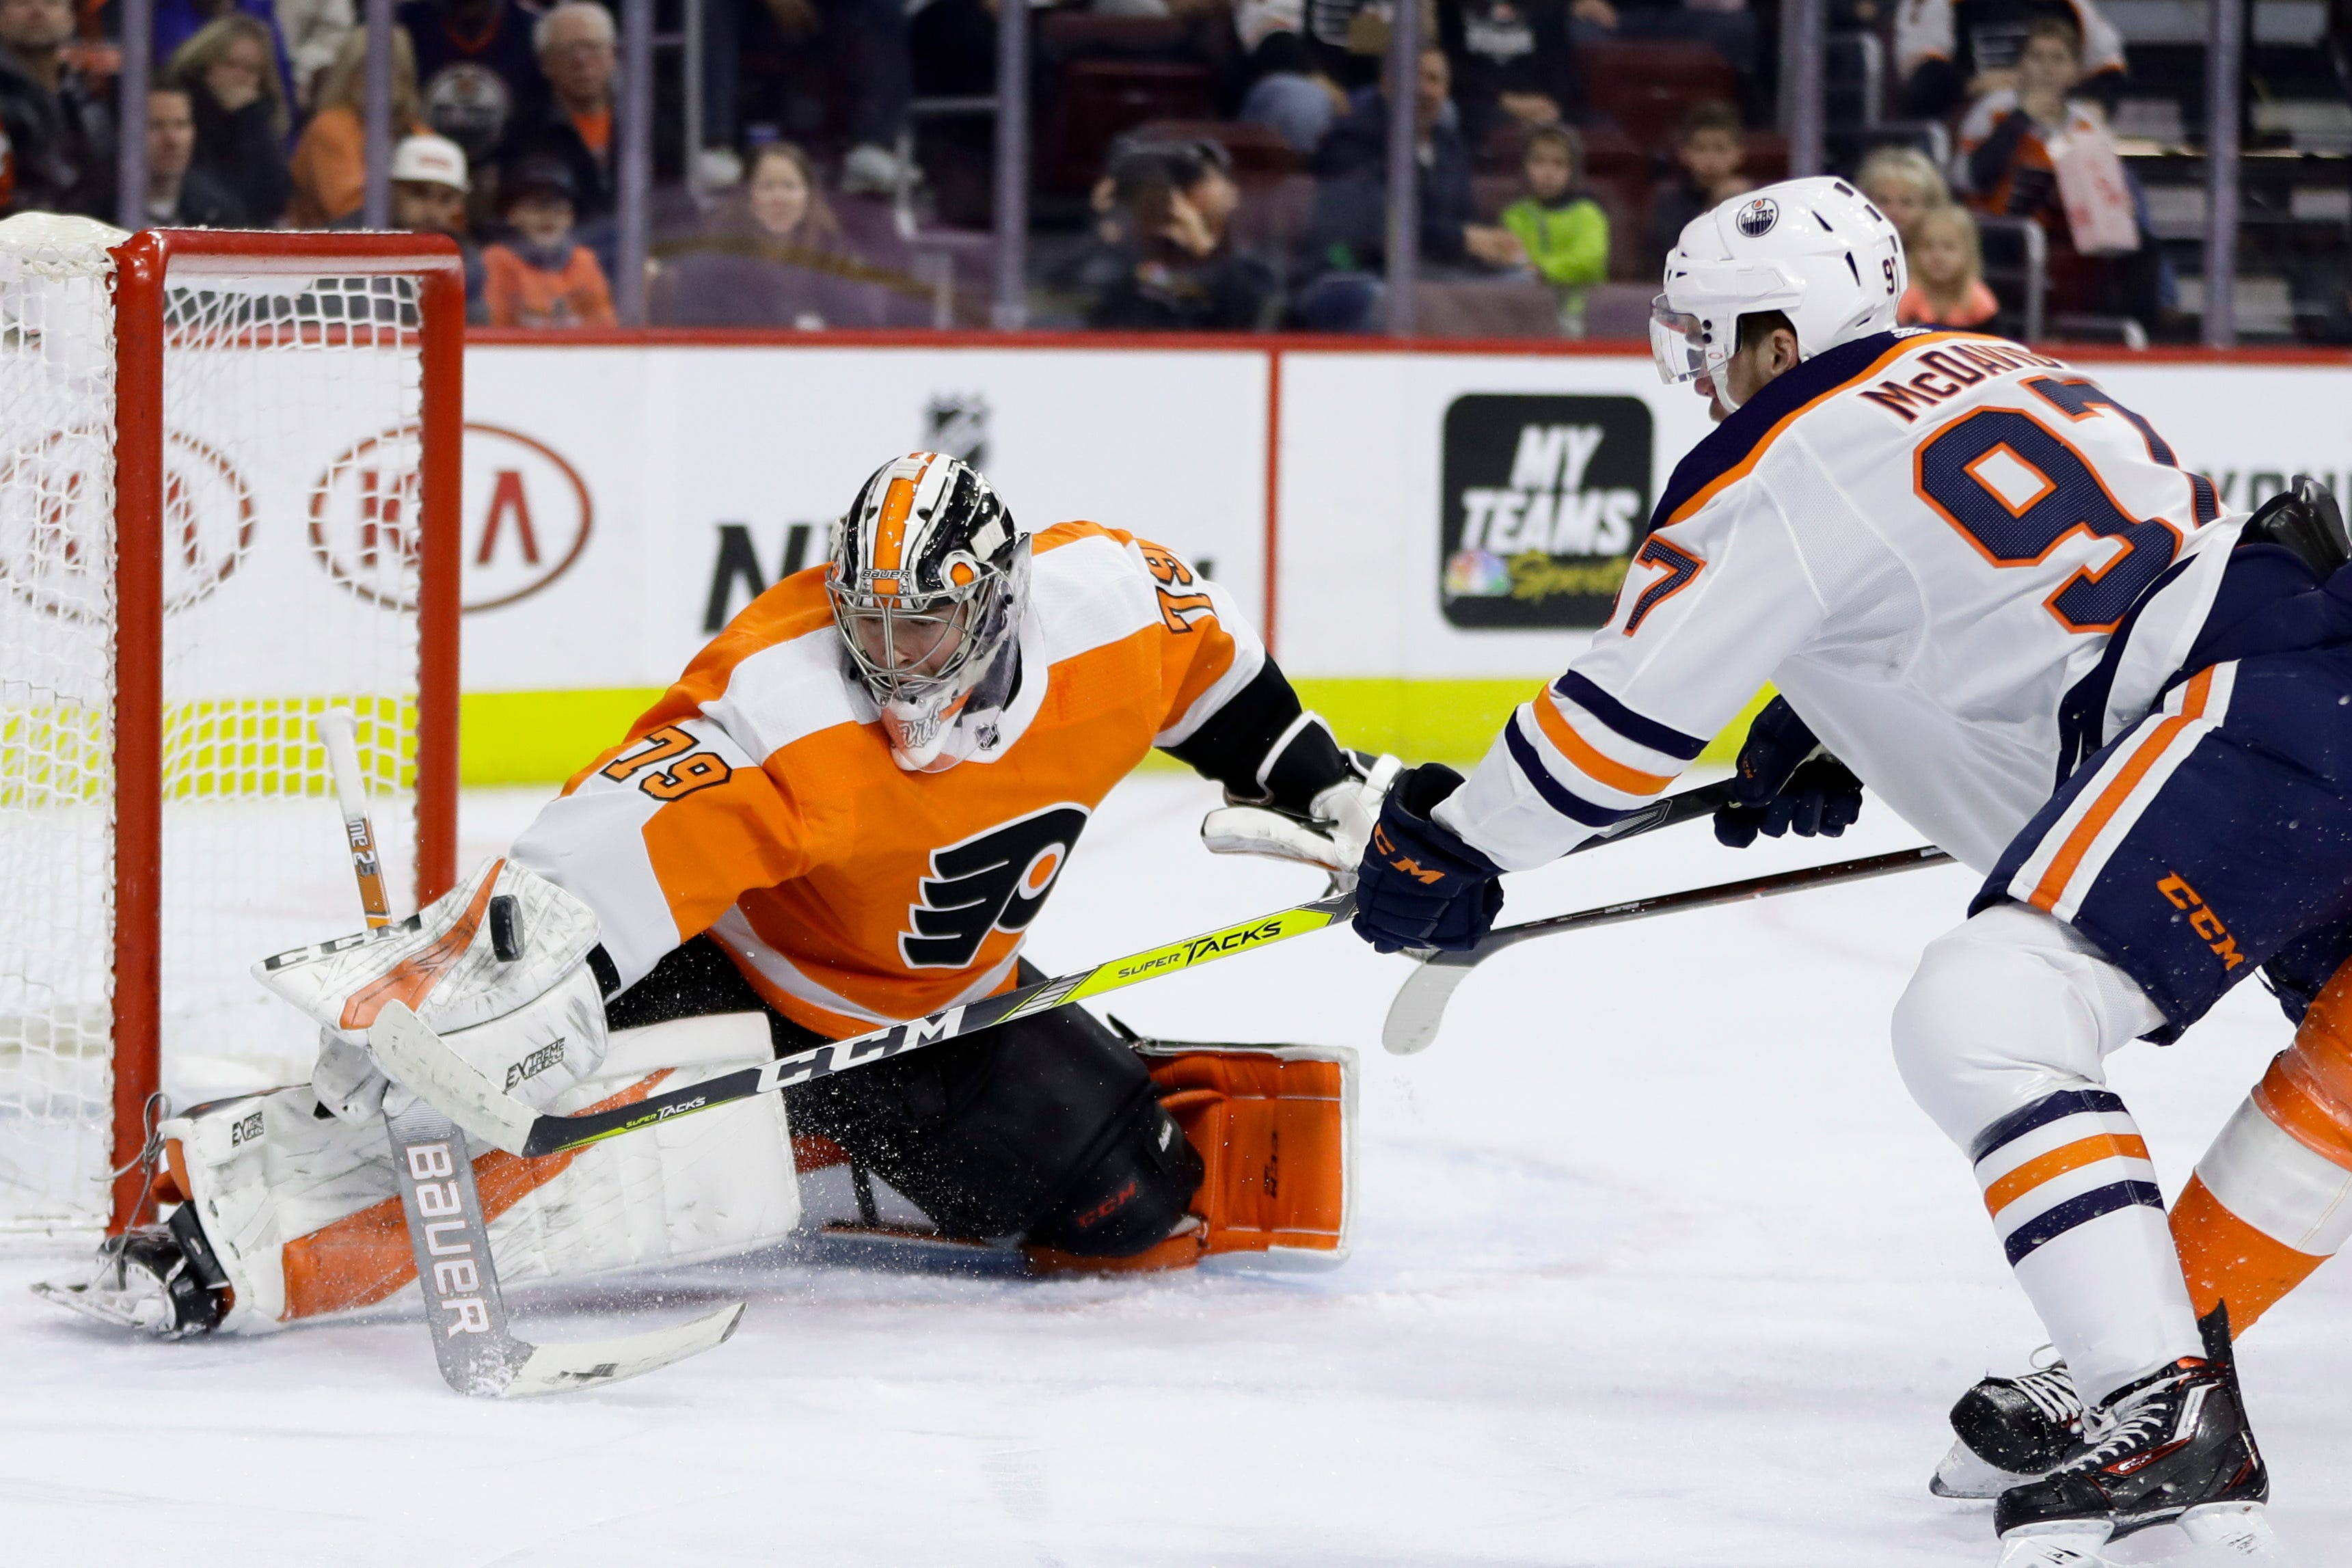 Patrick goal in OT, Flyers top Oilers 5-4 for 7th win in row